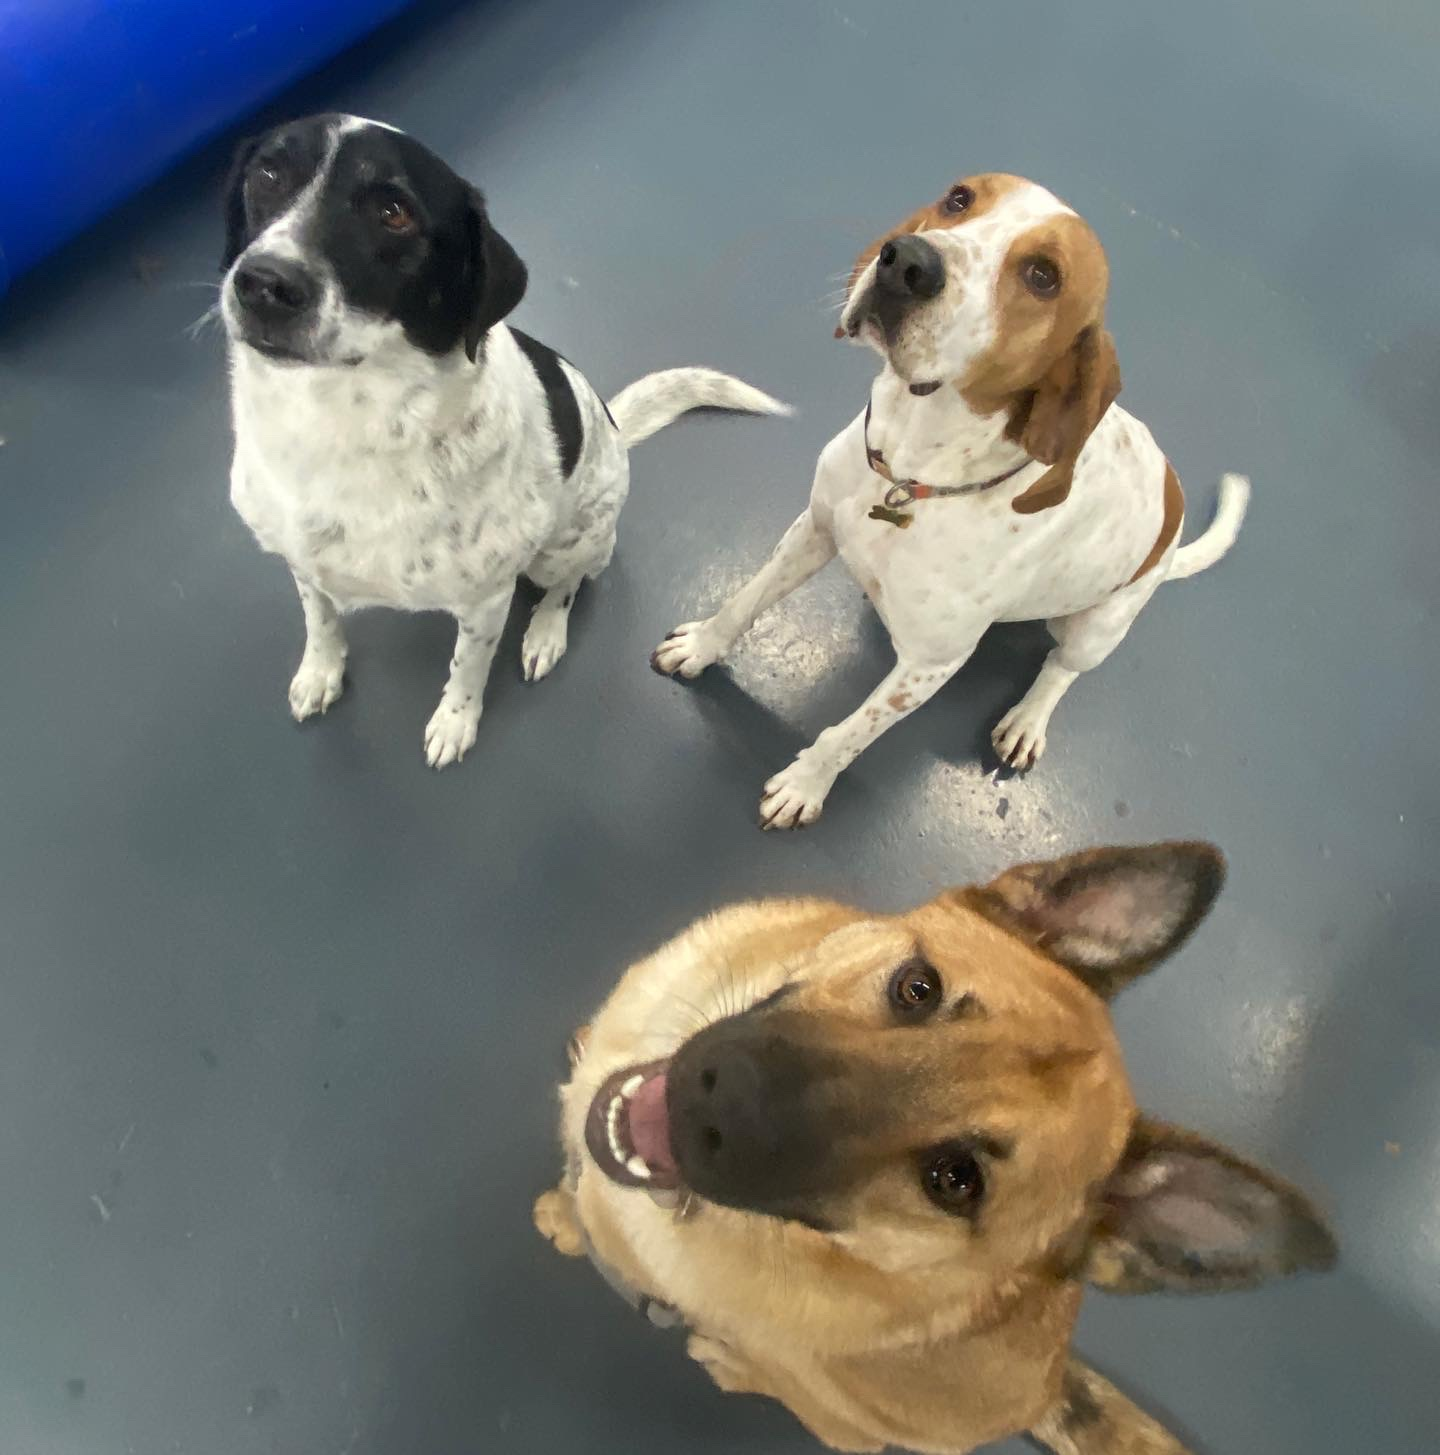 3 dogs of different breeds hanging out in the playroom